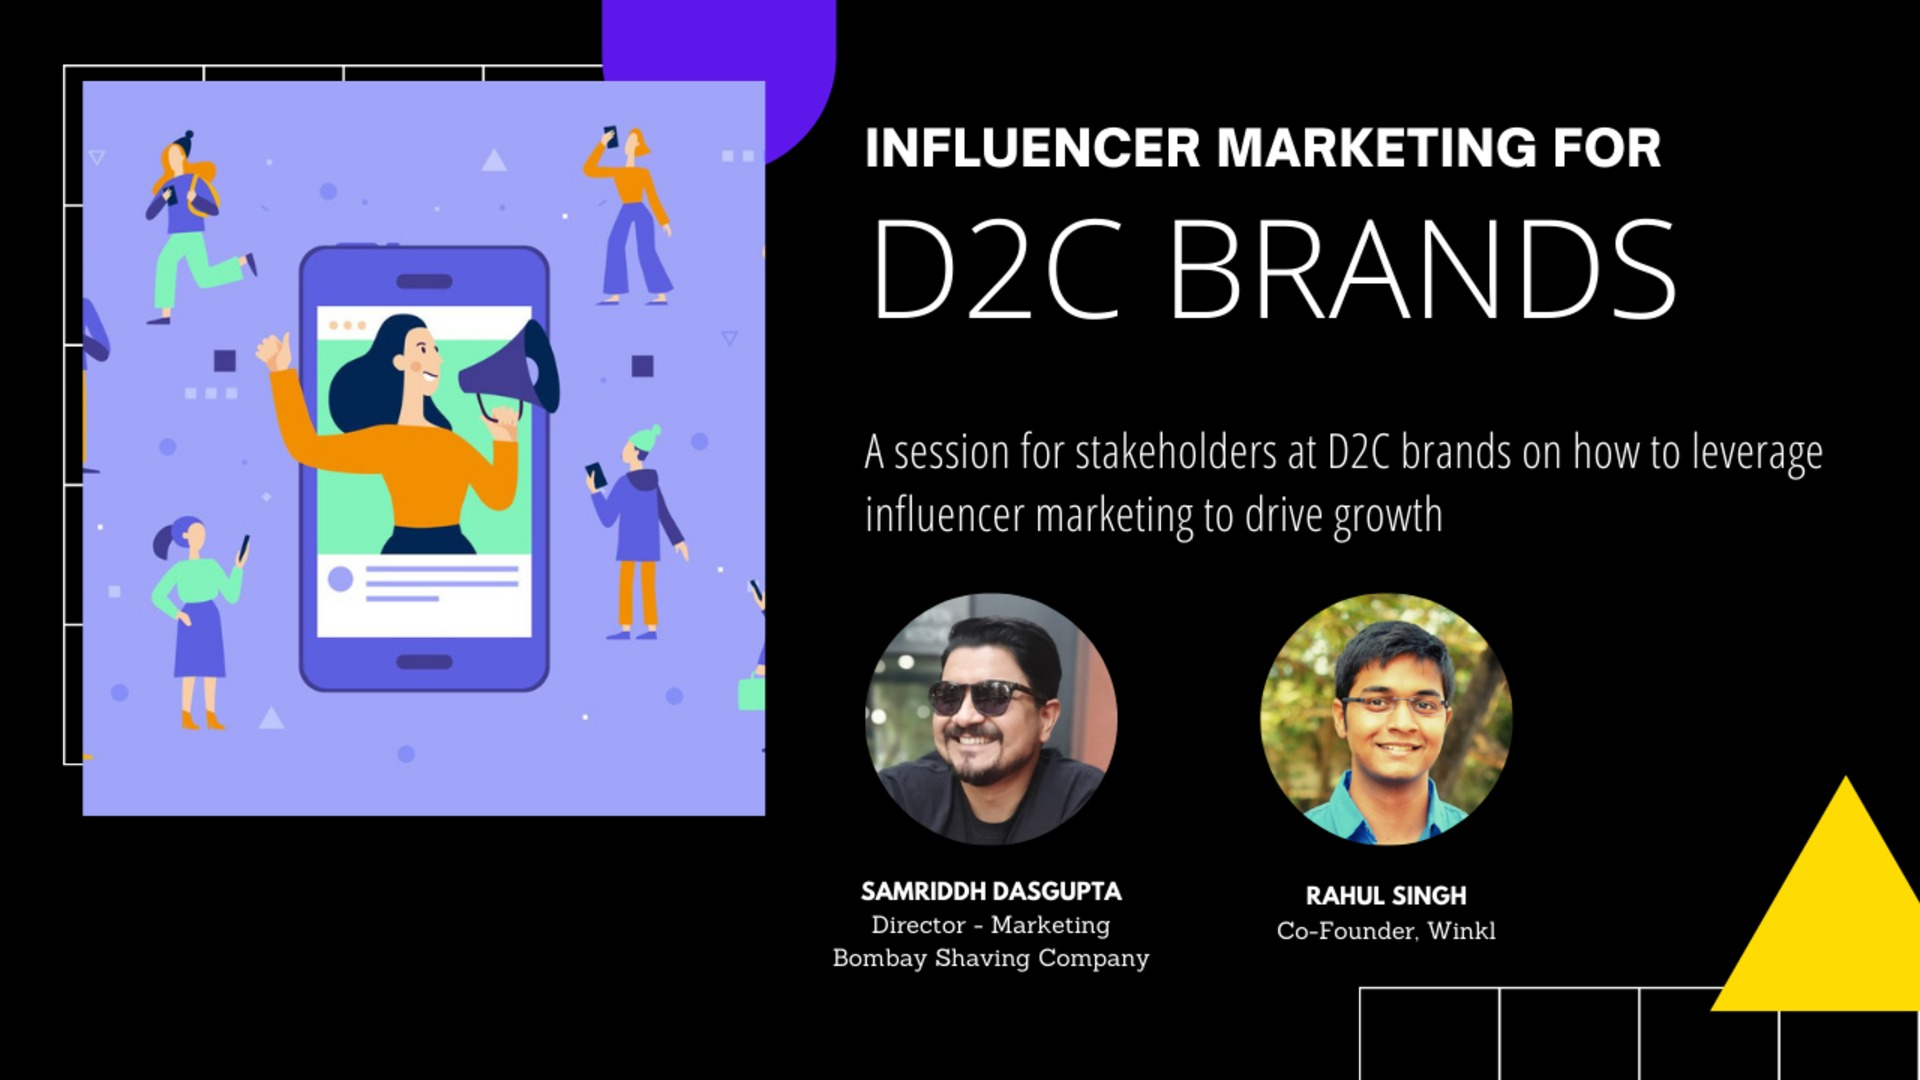 Winkl Chats: Influencer Marketing for D2C Brands with Samriddh Dasgupta @ Bombay Shaving Company image